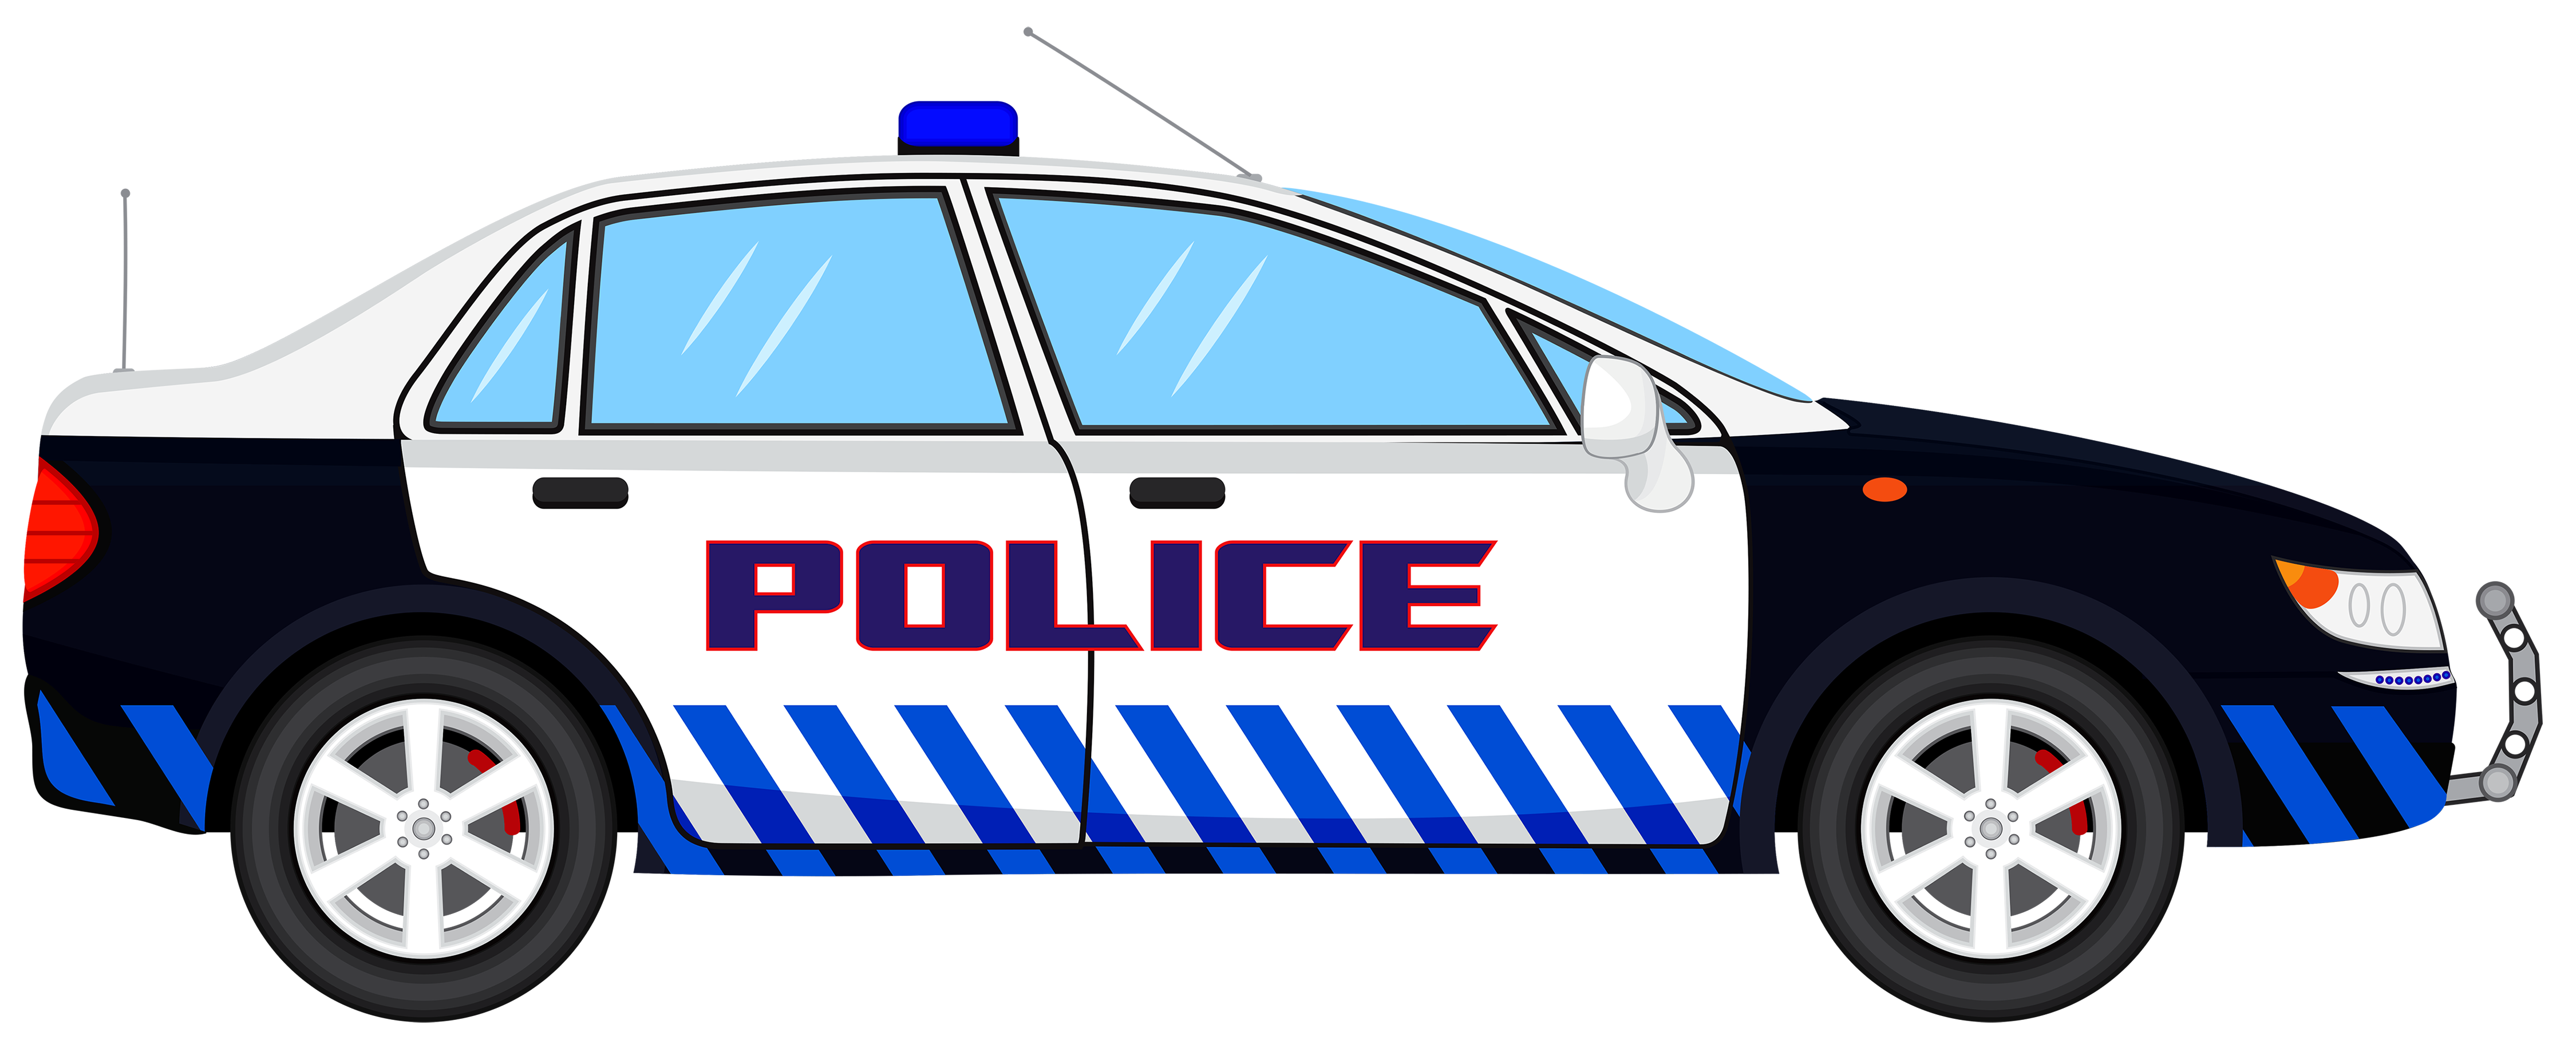 Loading car clipart royalty free Blue police car clipart - ClipartFest royalty free